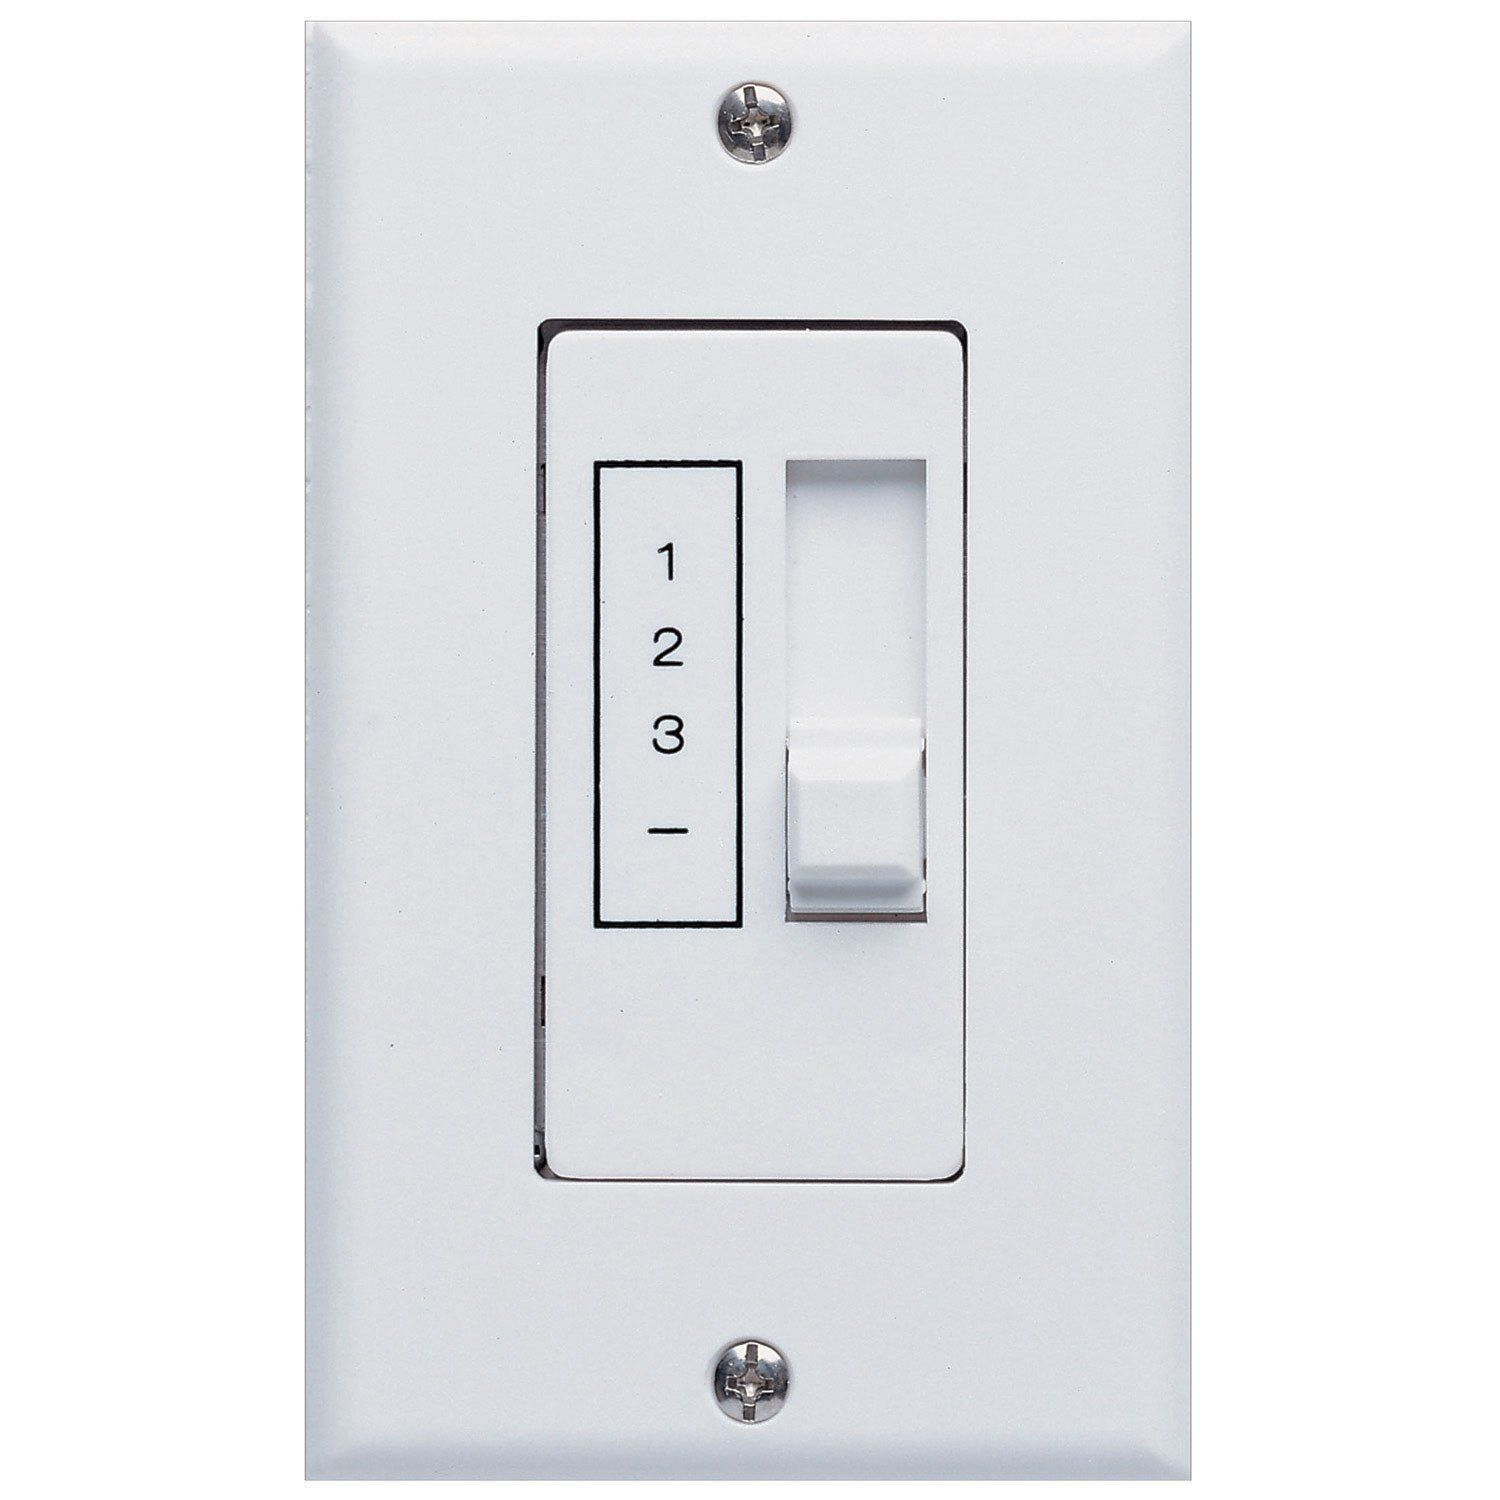 Concord fans speed ceiling fan slider white wall control switch